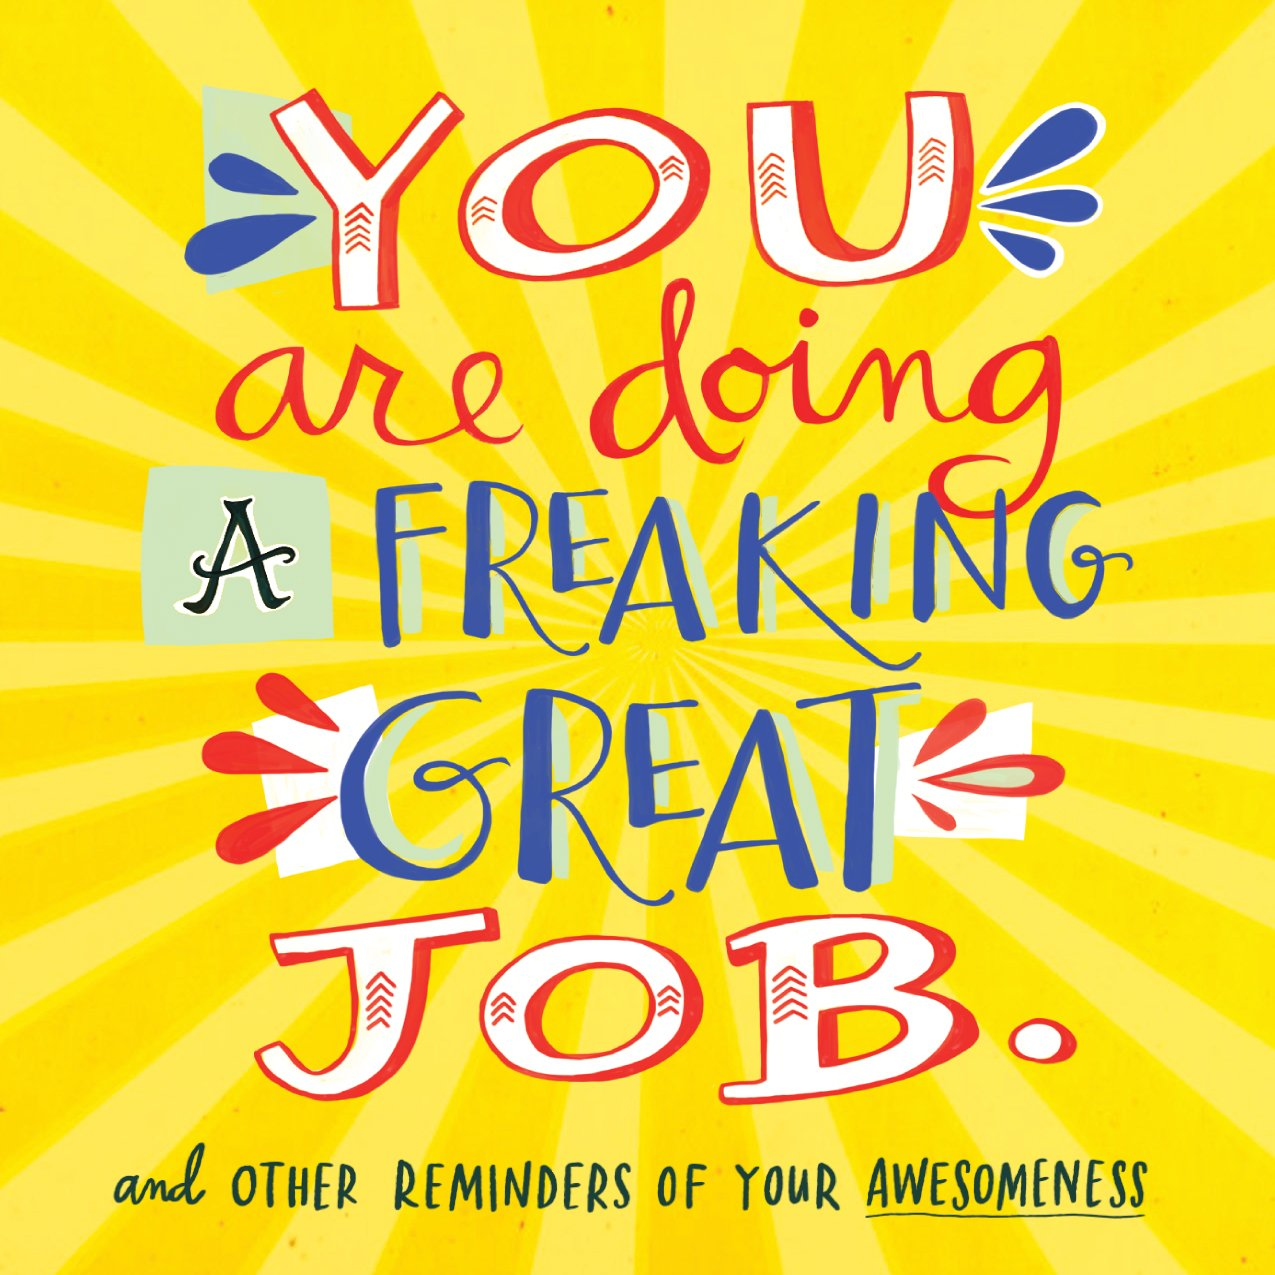 Great Job Quotes You Are Doing a Freaking Great Job.: And Other Reminders of Your  Great Job Quotes